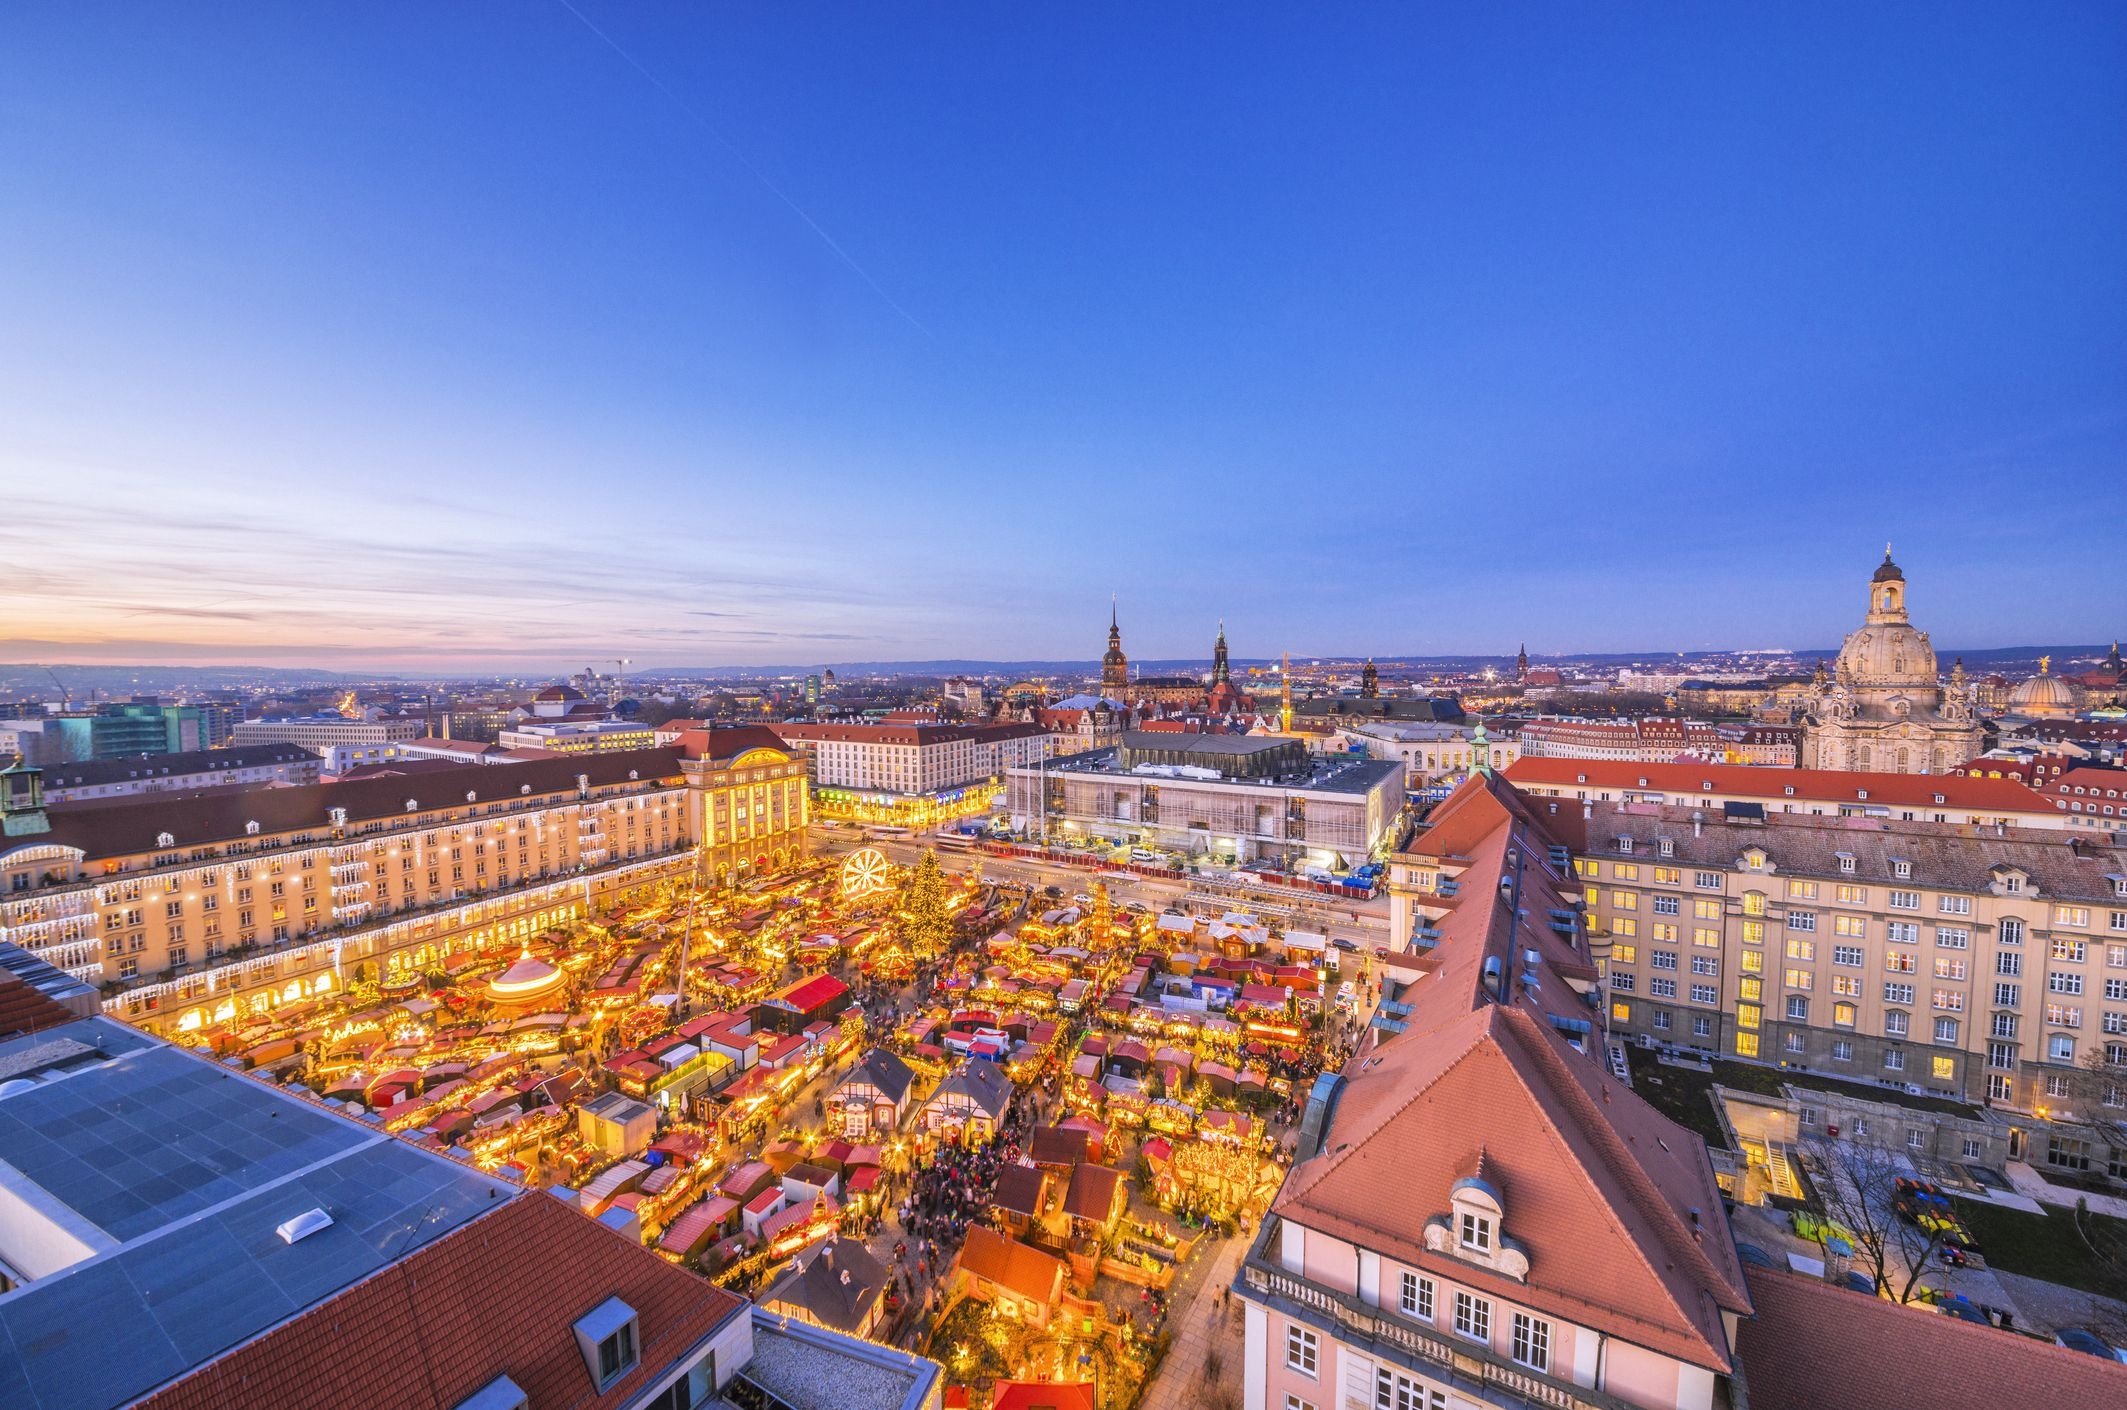 The 5 best Christmas markets in Germany